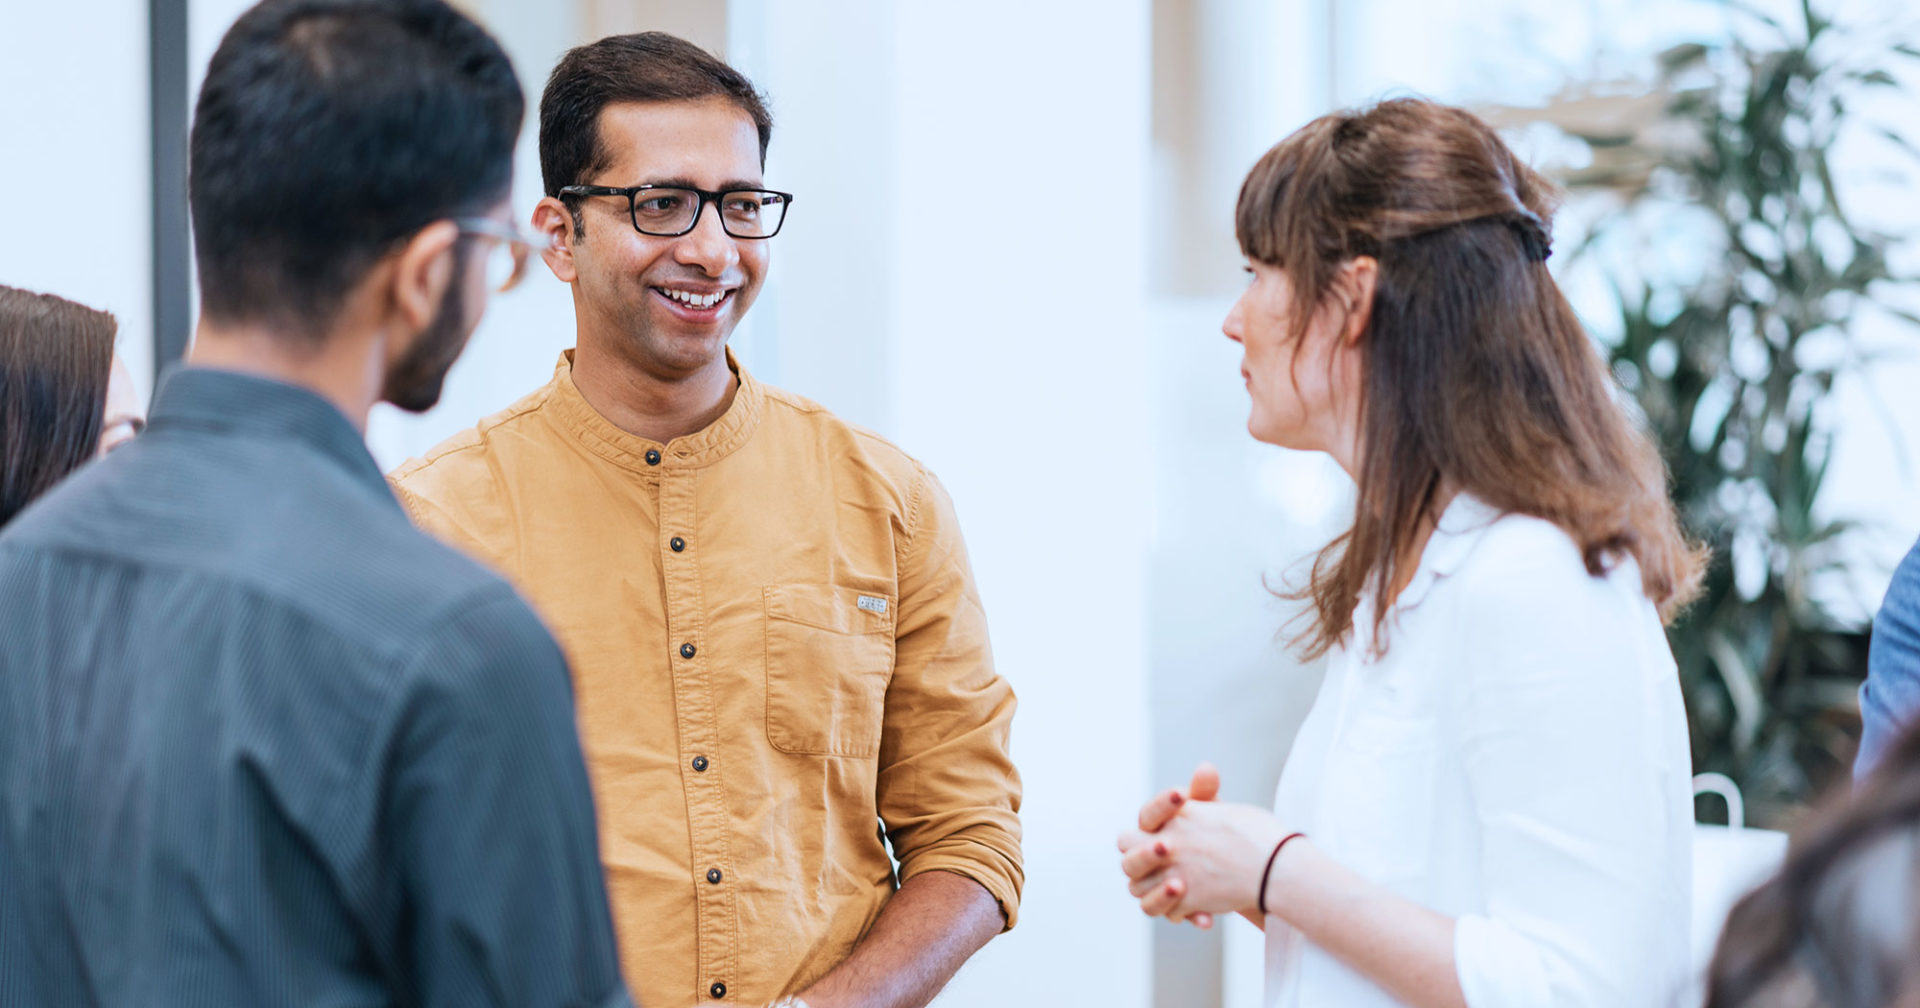 Student with glasses and yellow shirt during Welcome Day talking to study course coordinator